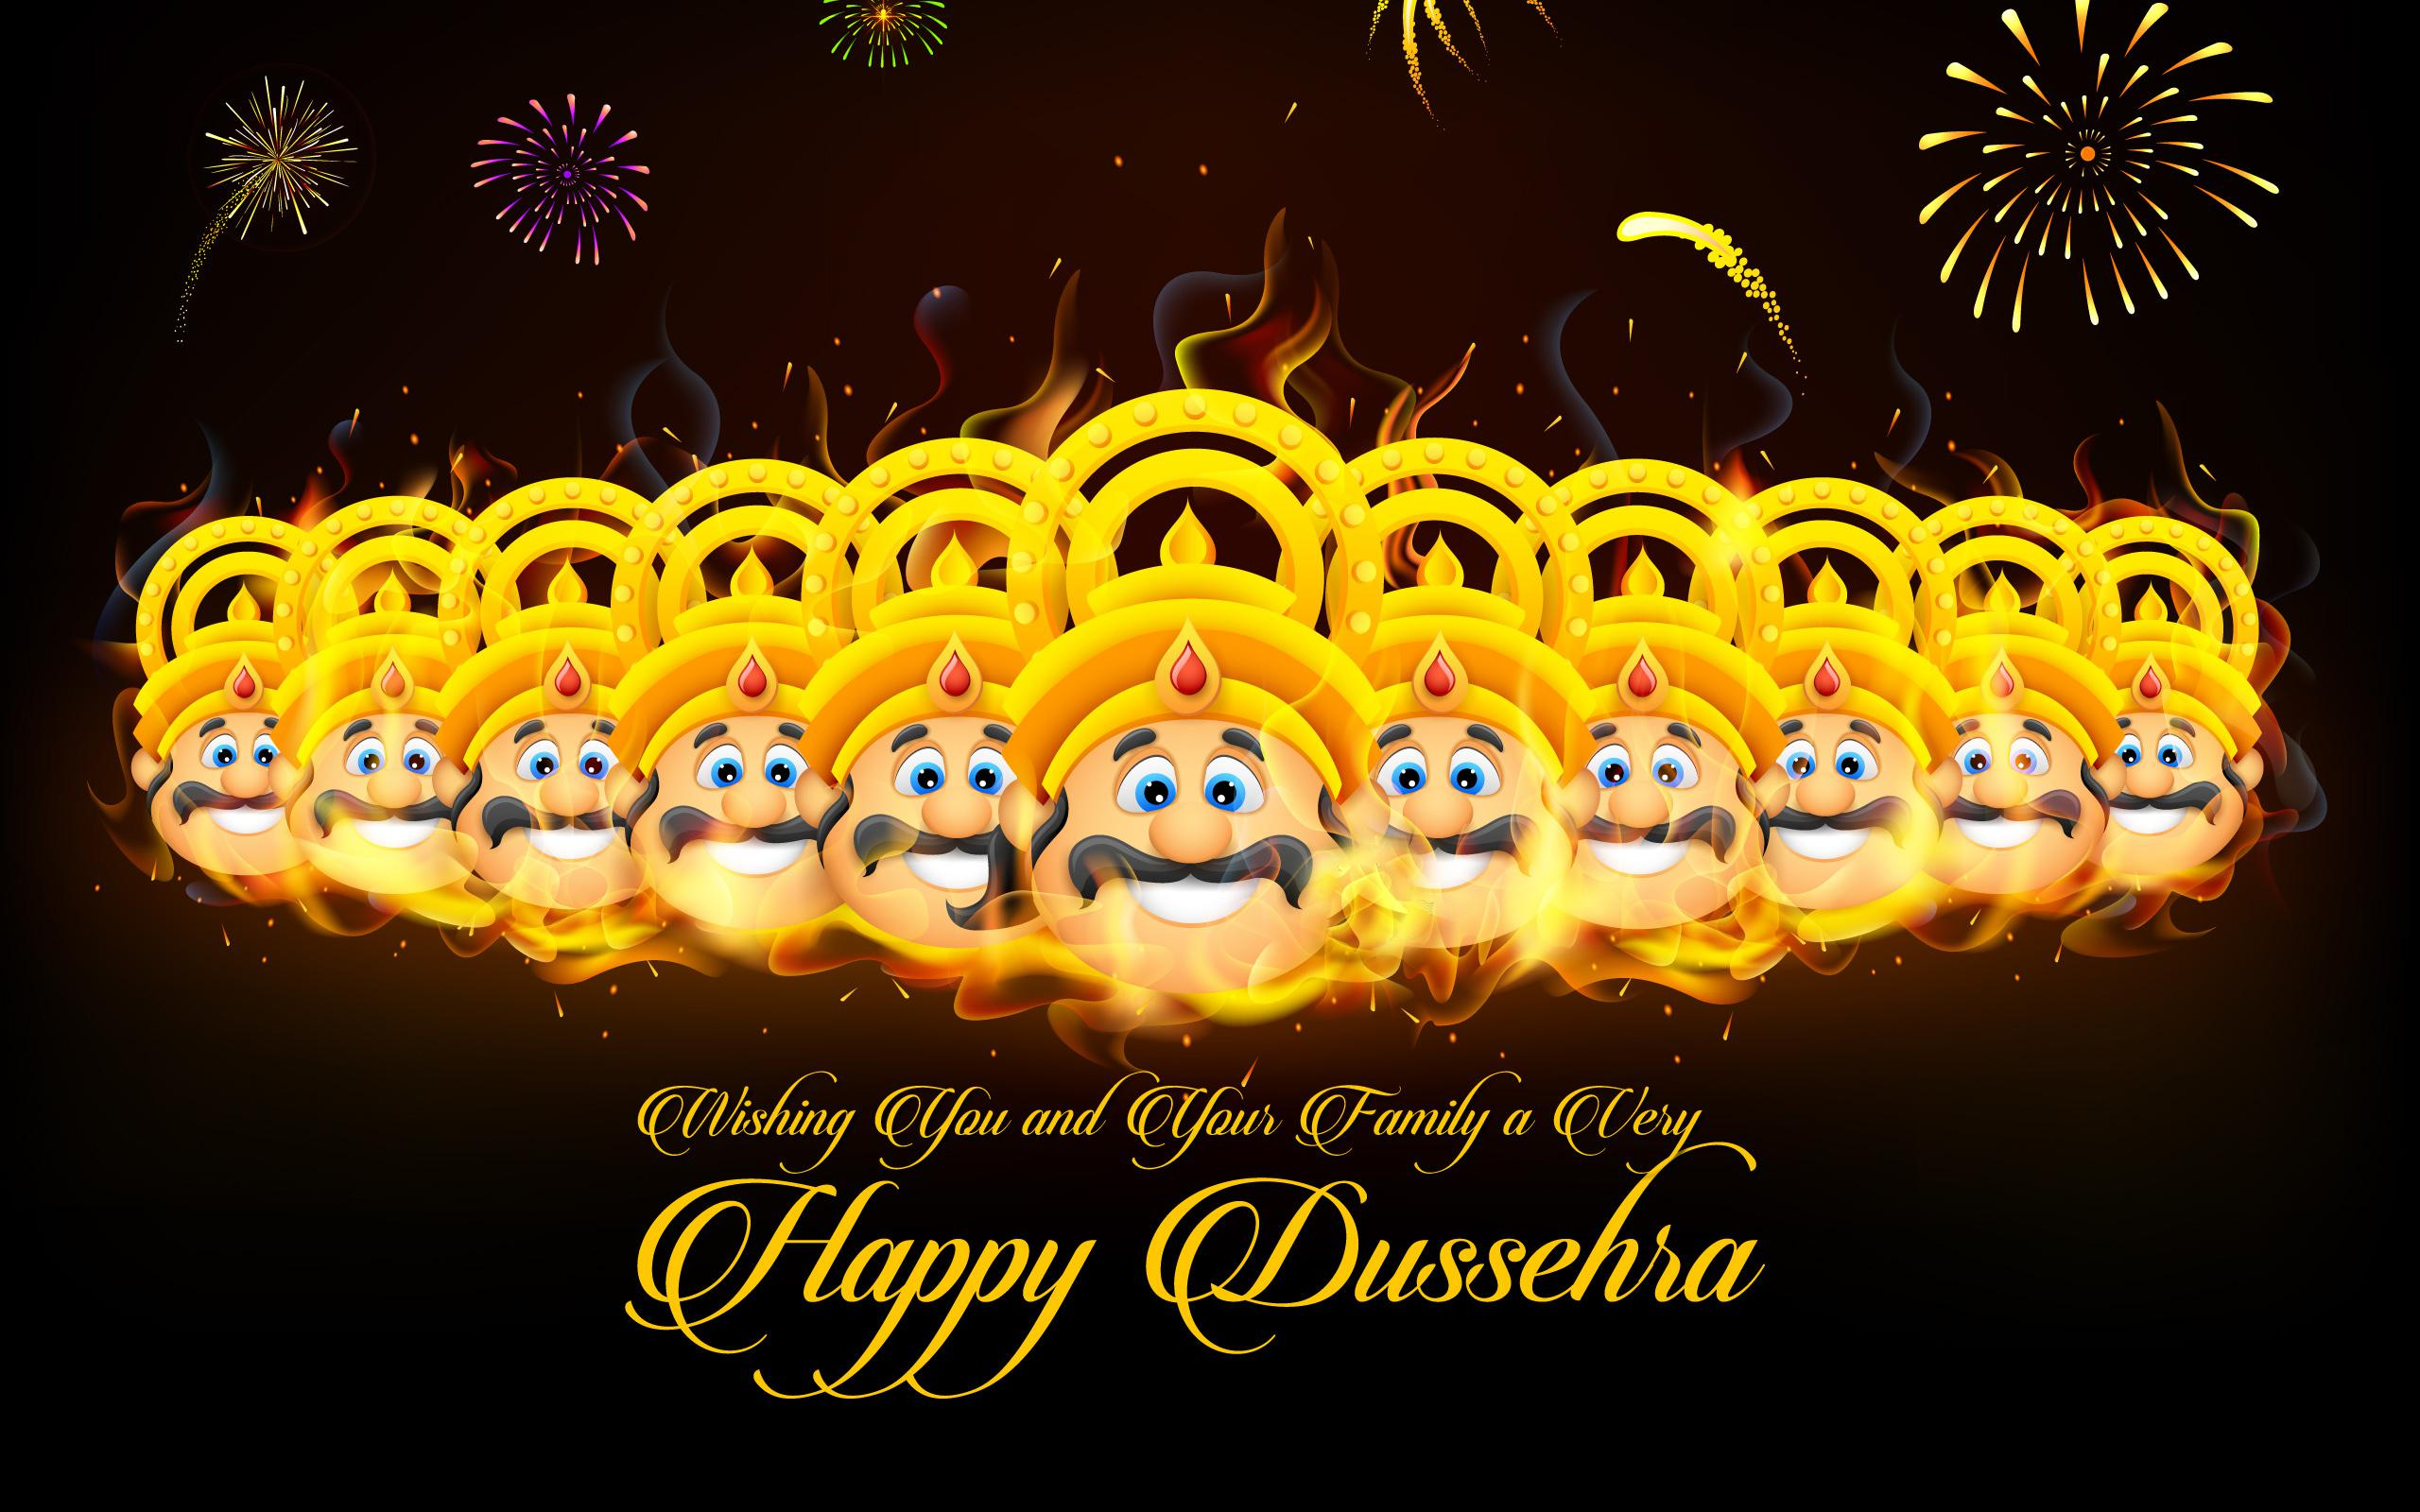 Dussehra HD Wallpapers Photos Images Download Hd